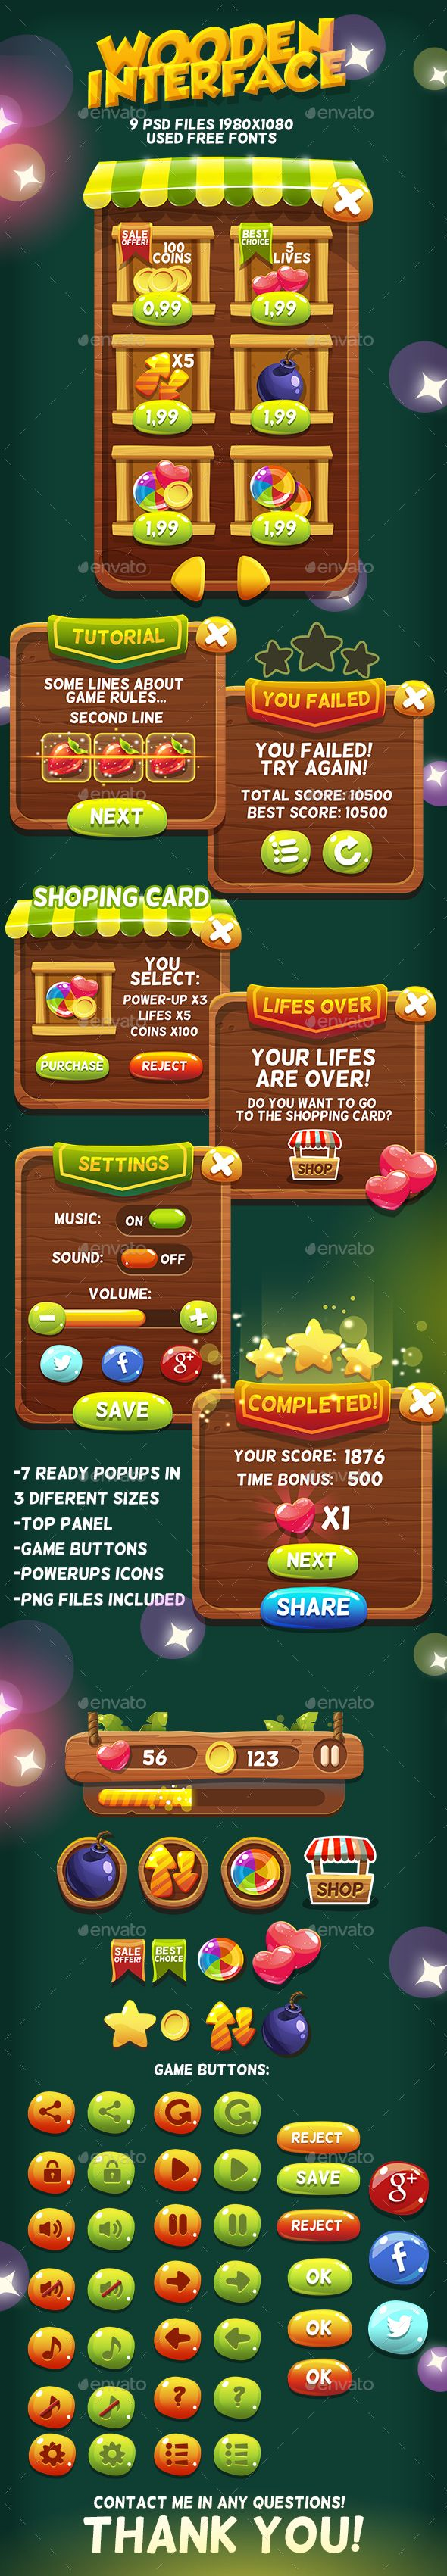 Wooden Game Interface #4 - User Interfaces Game Assets | Download: https://graphicriver.net/item/wooden-game-interface-4/18317563?ref=sinzo